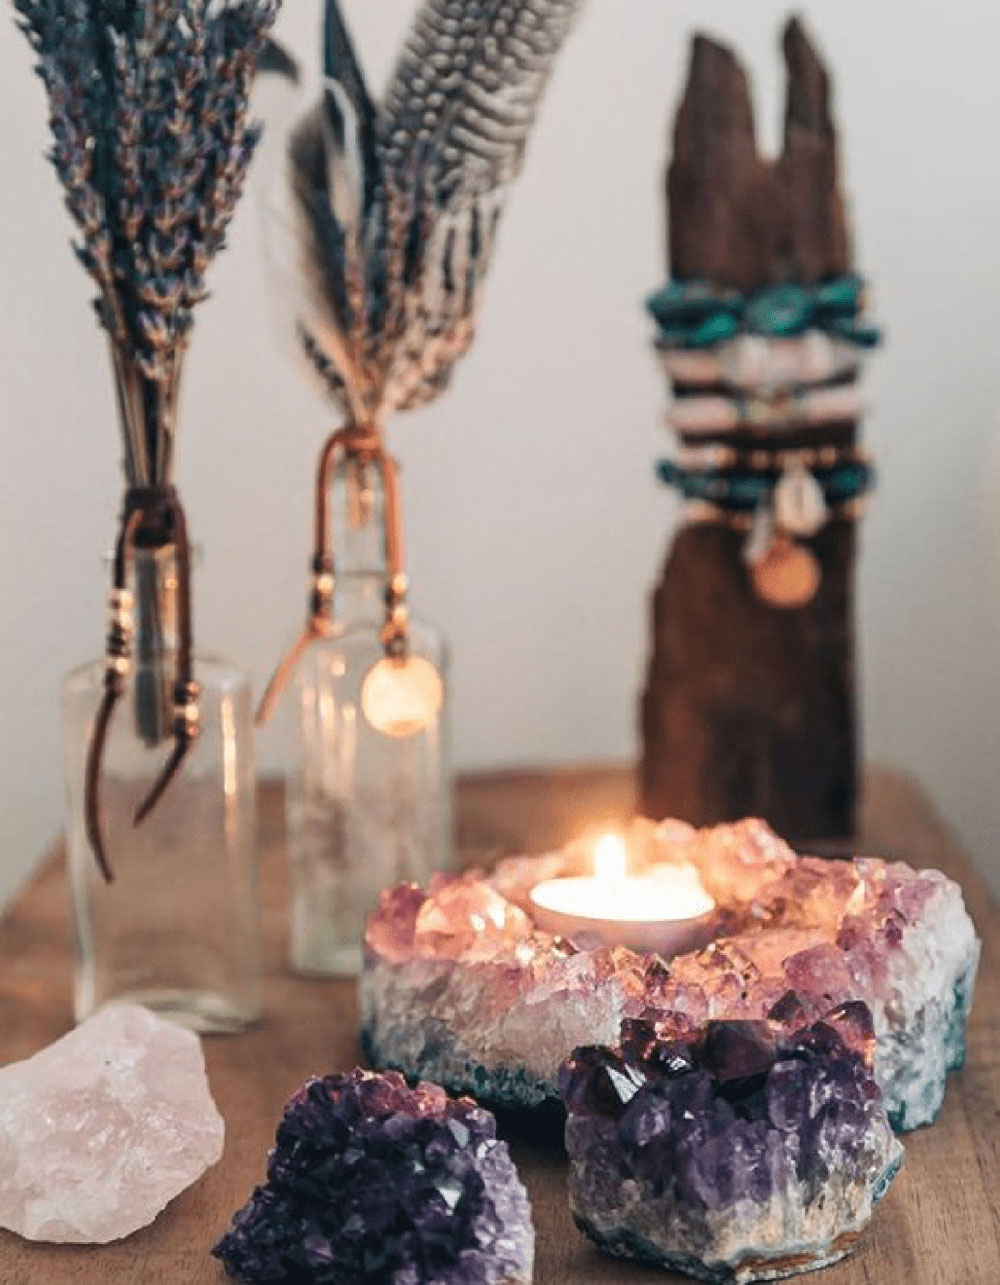 BOHO_Page_2 3 options for integrating birthstones into the interior design